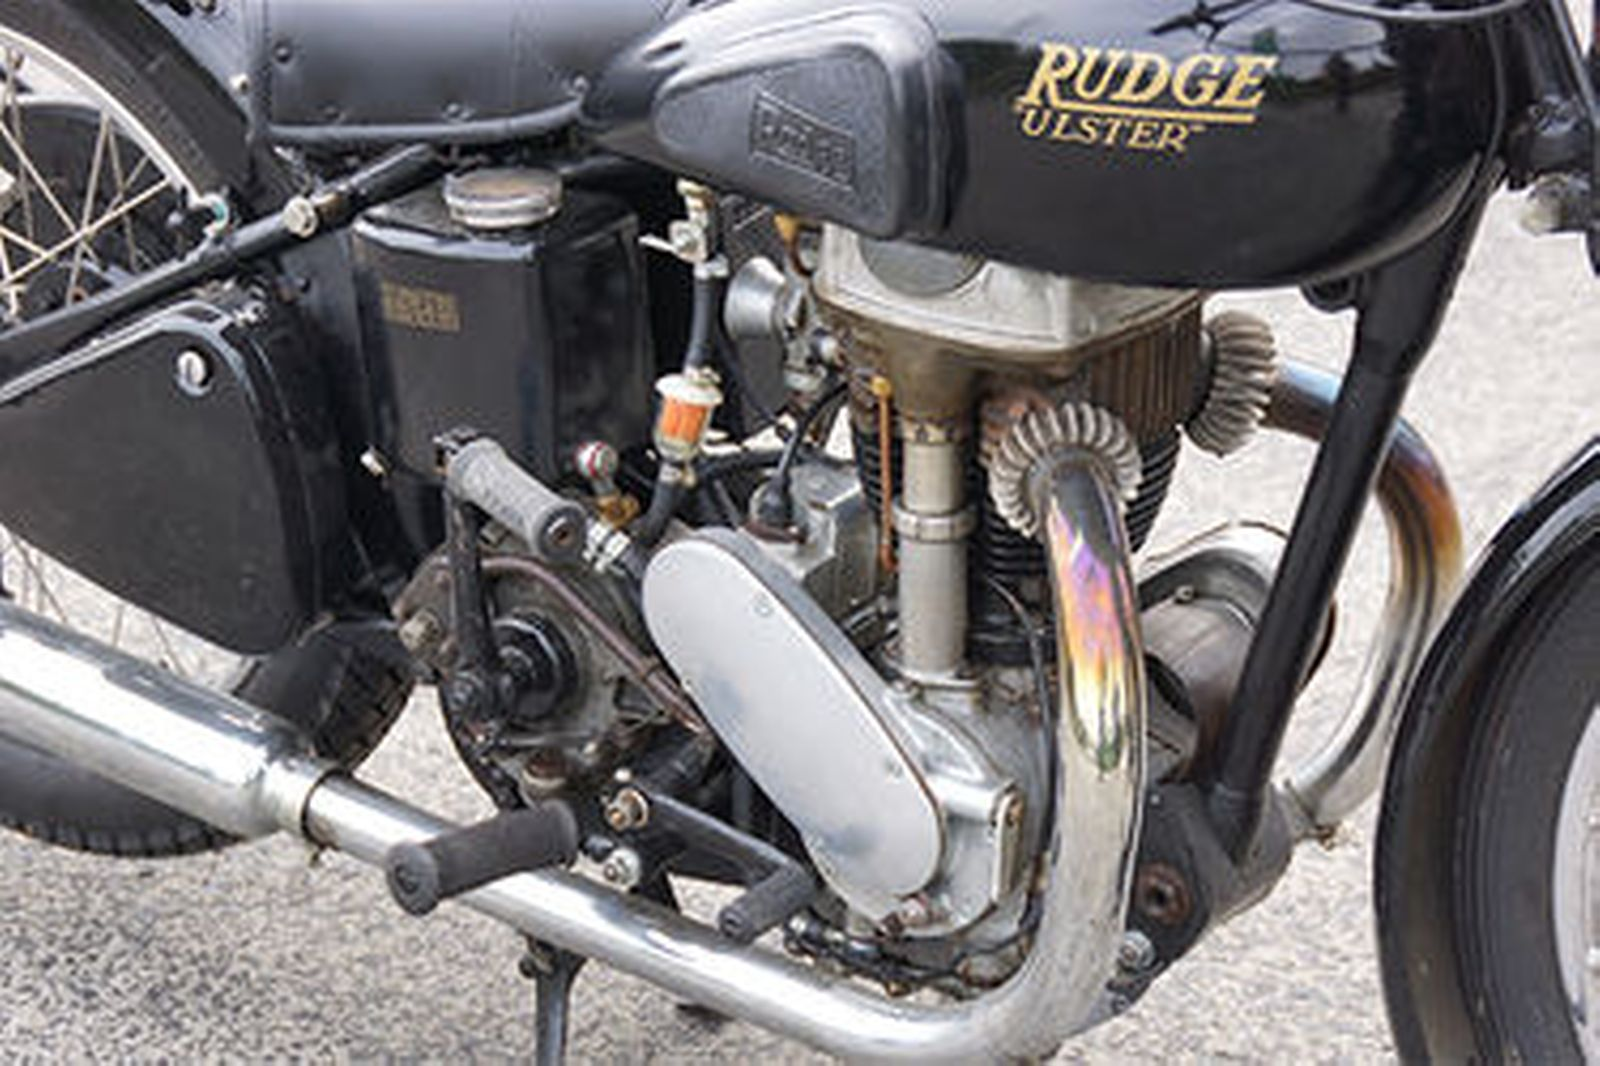 Rudge Ulster 500cc Motorcycle